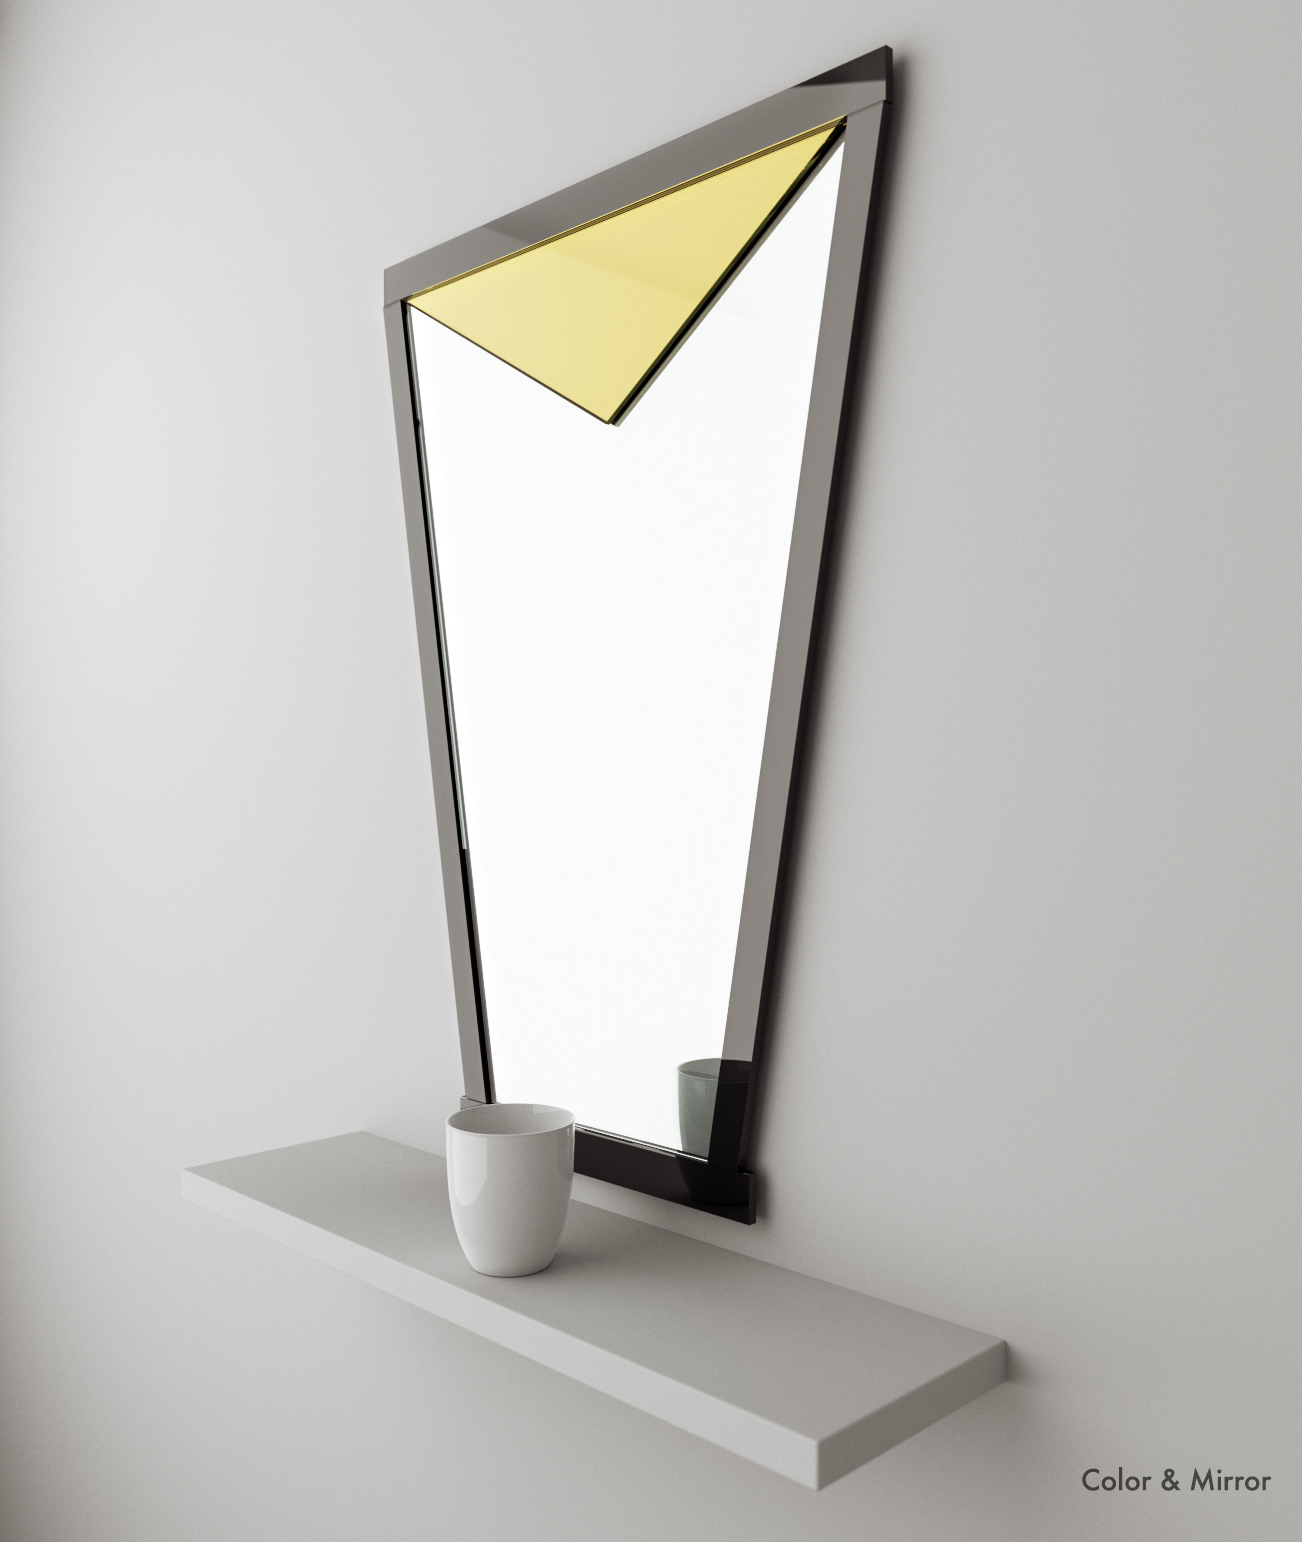 Full view of Golden wall mirror